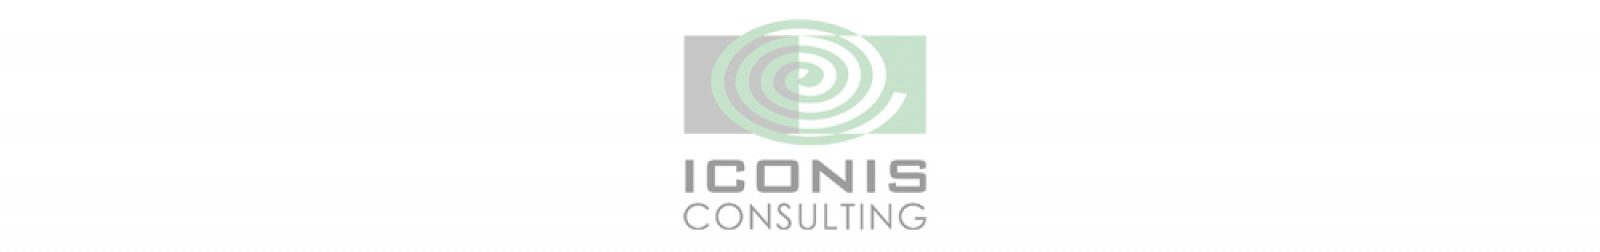 hr-easy letter – ICONIS Consulting